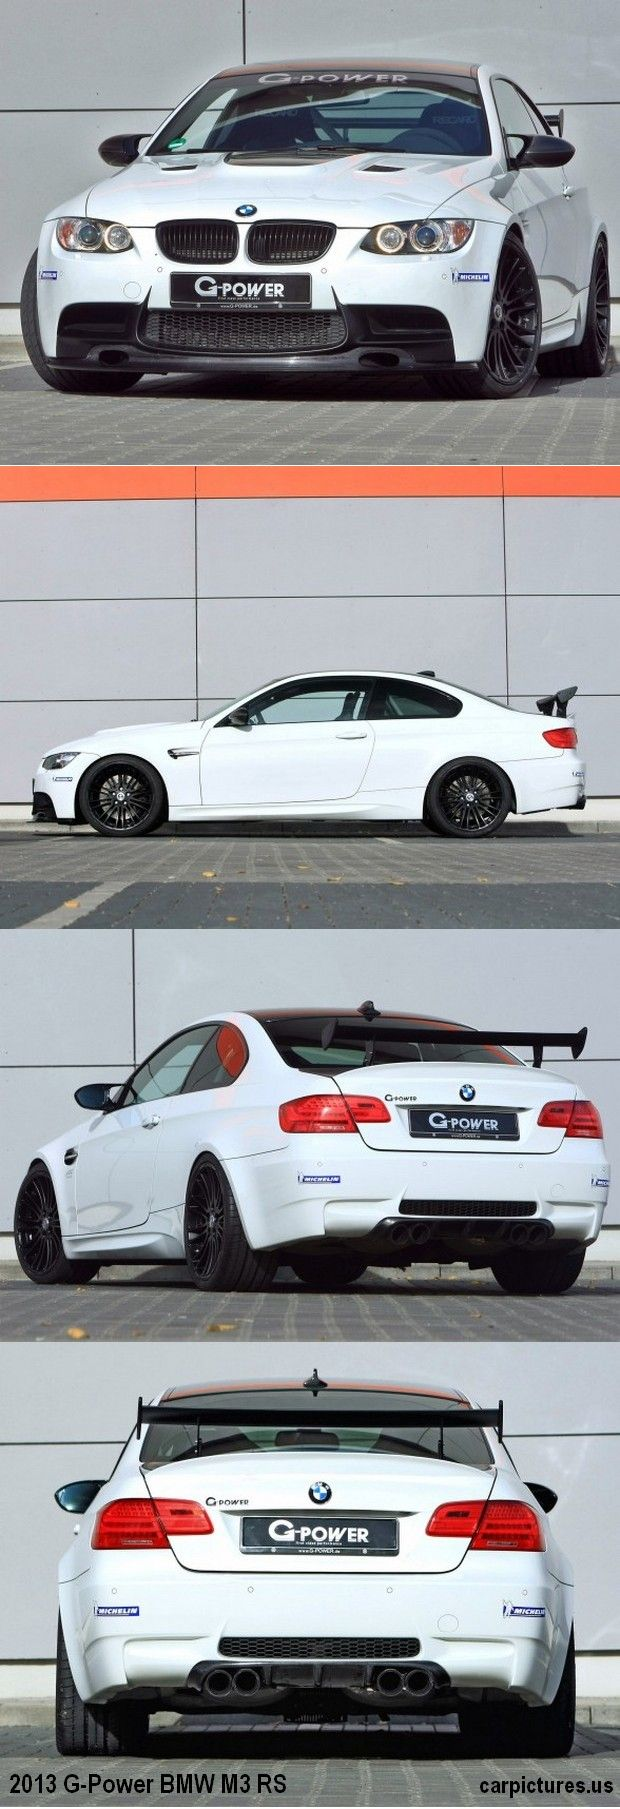 2013 G-Power BMW M3 RS Tuning